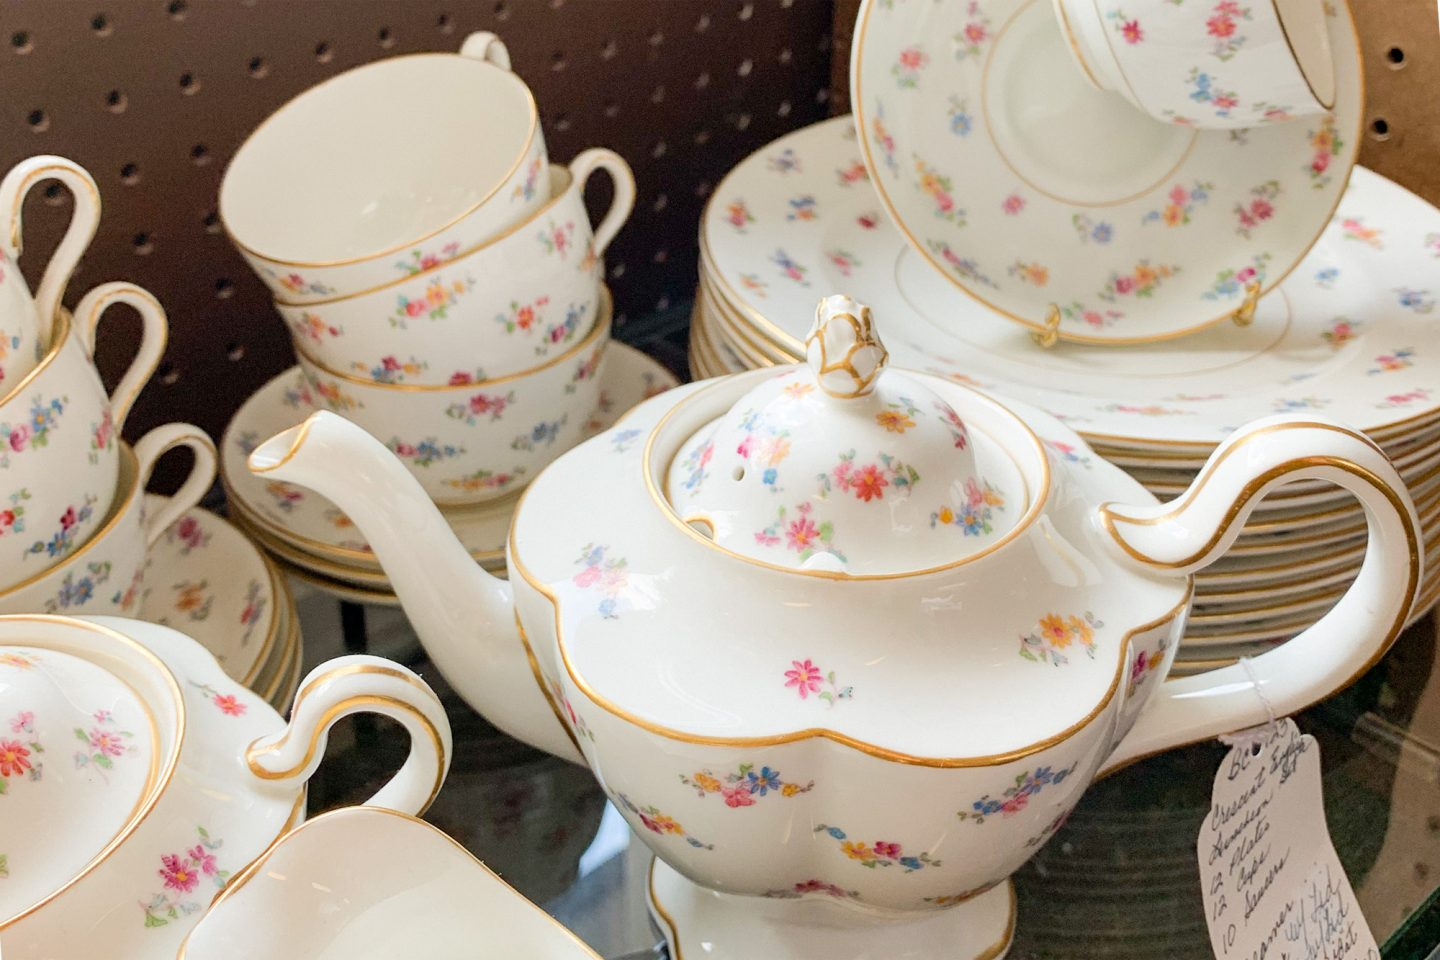 The Best Places to Find Vintage China